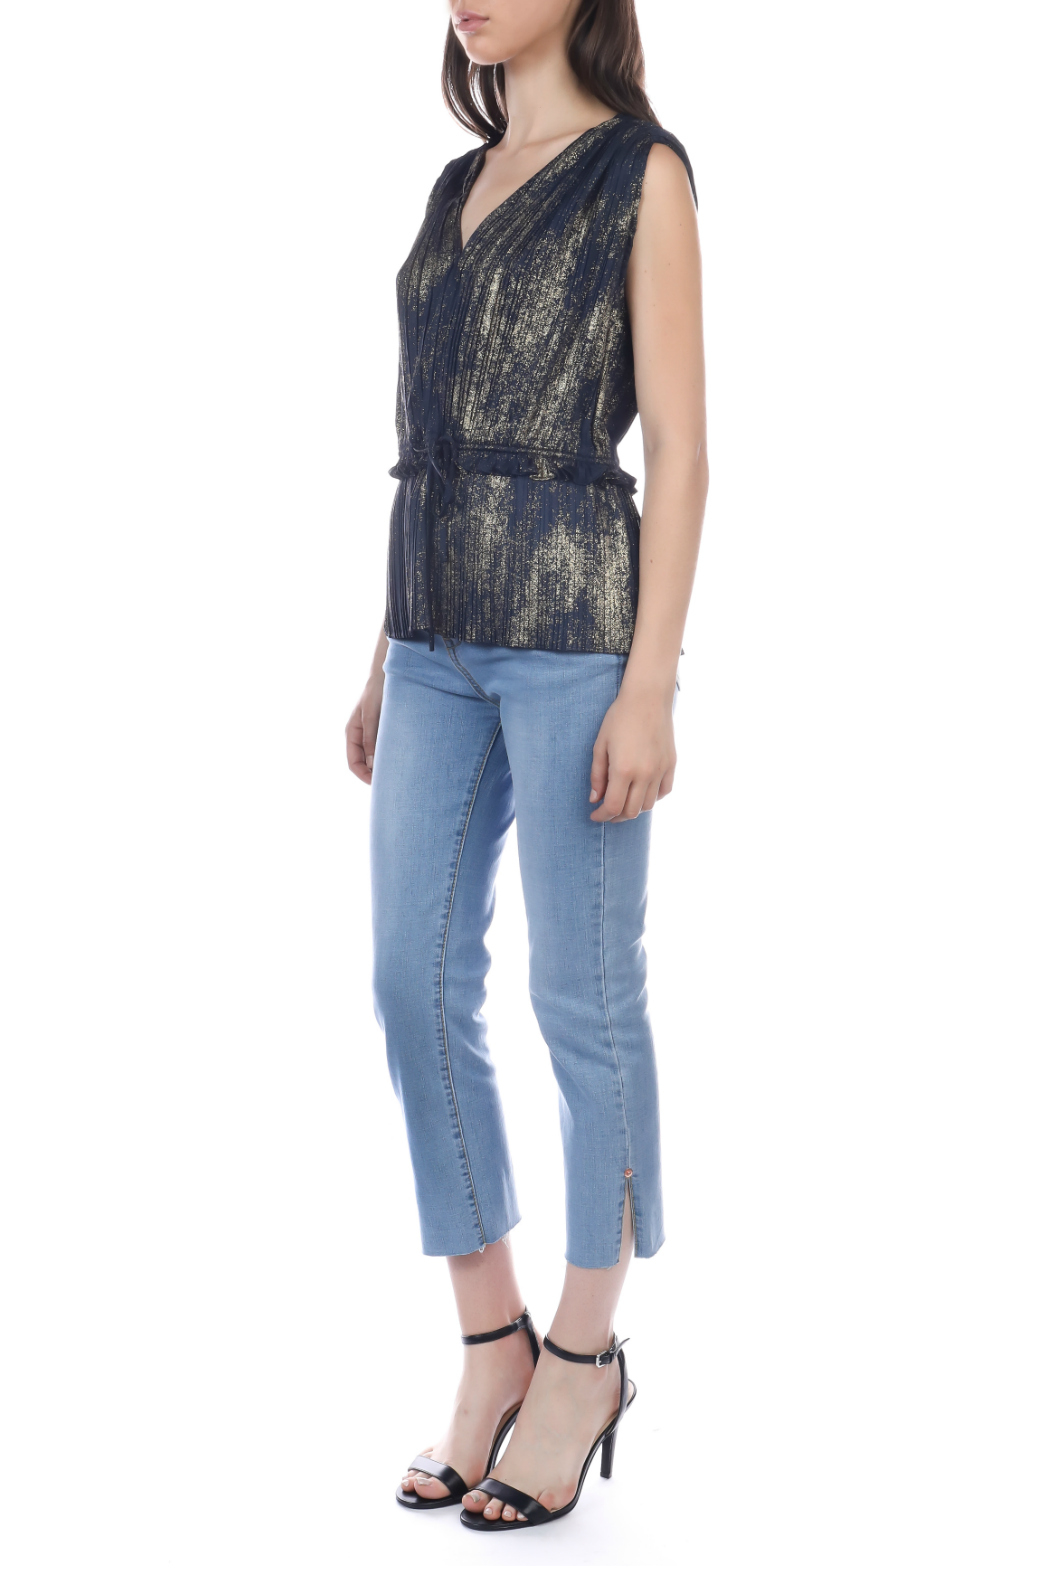 Current Air Gold foil pleated sleeveless top - Side Cropped Image